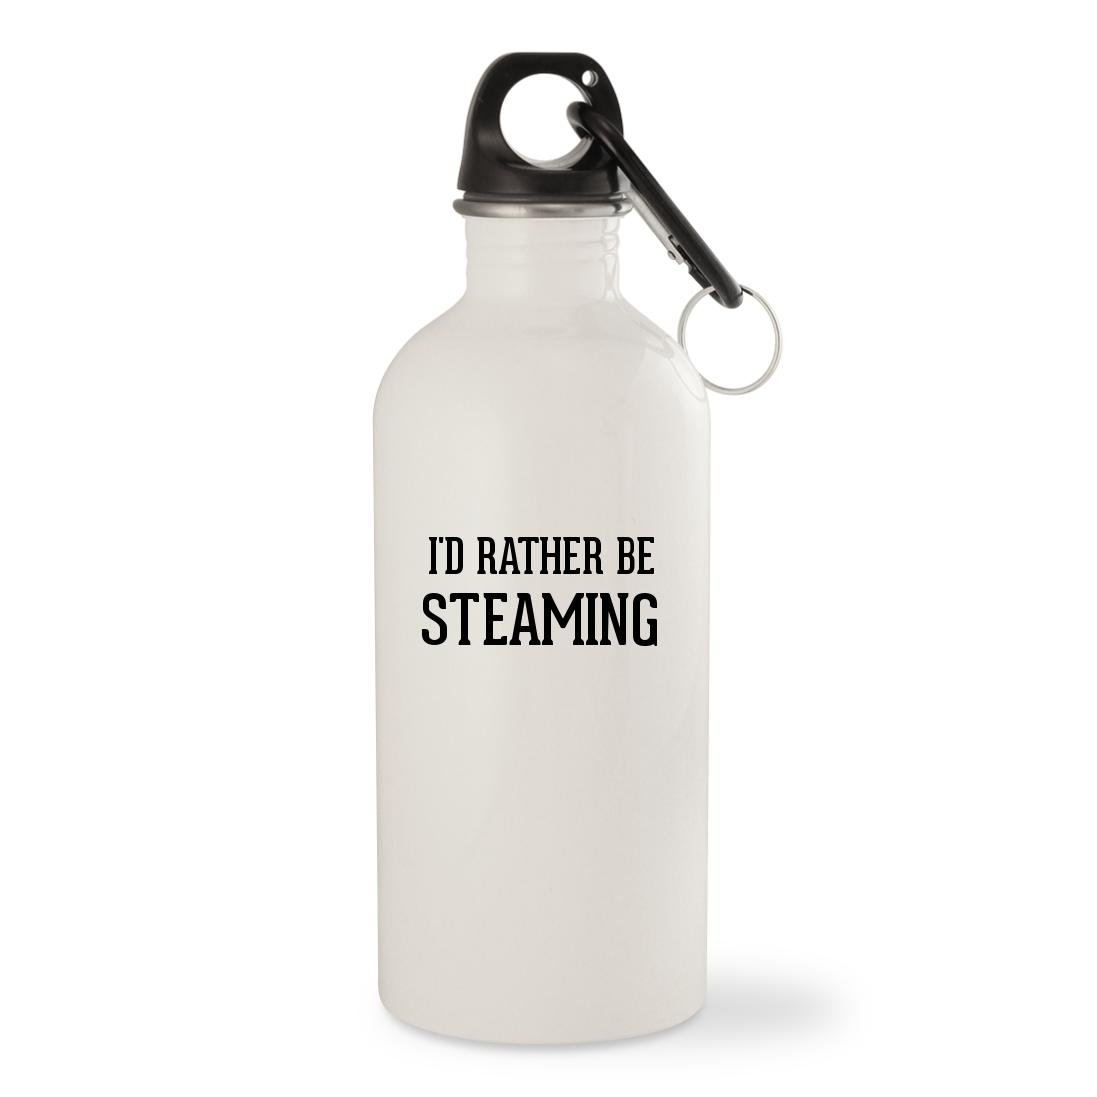 I'd Rather Be STEAMING - White 20oz Stainless Steel Water Bottle with Carabiner